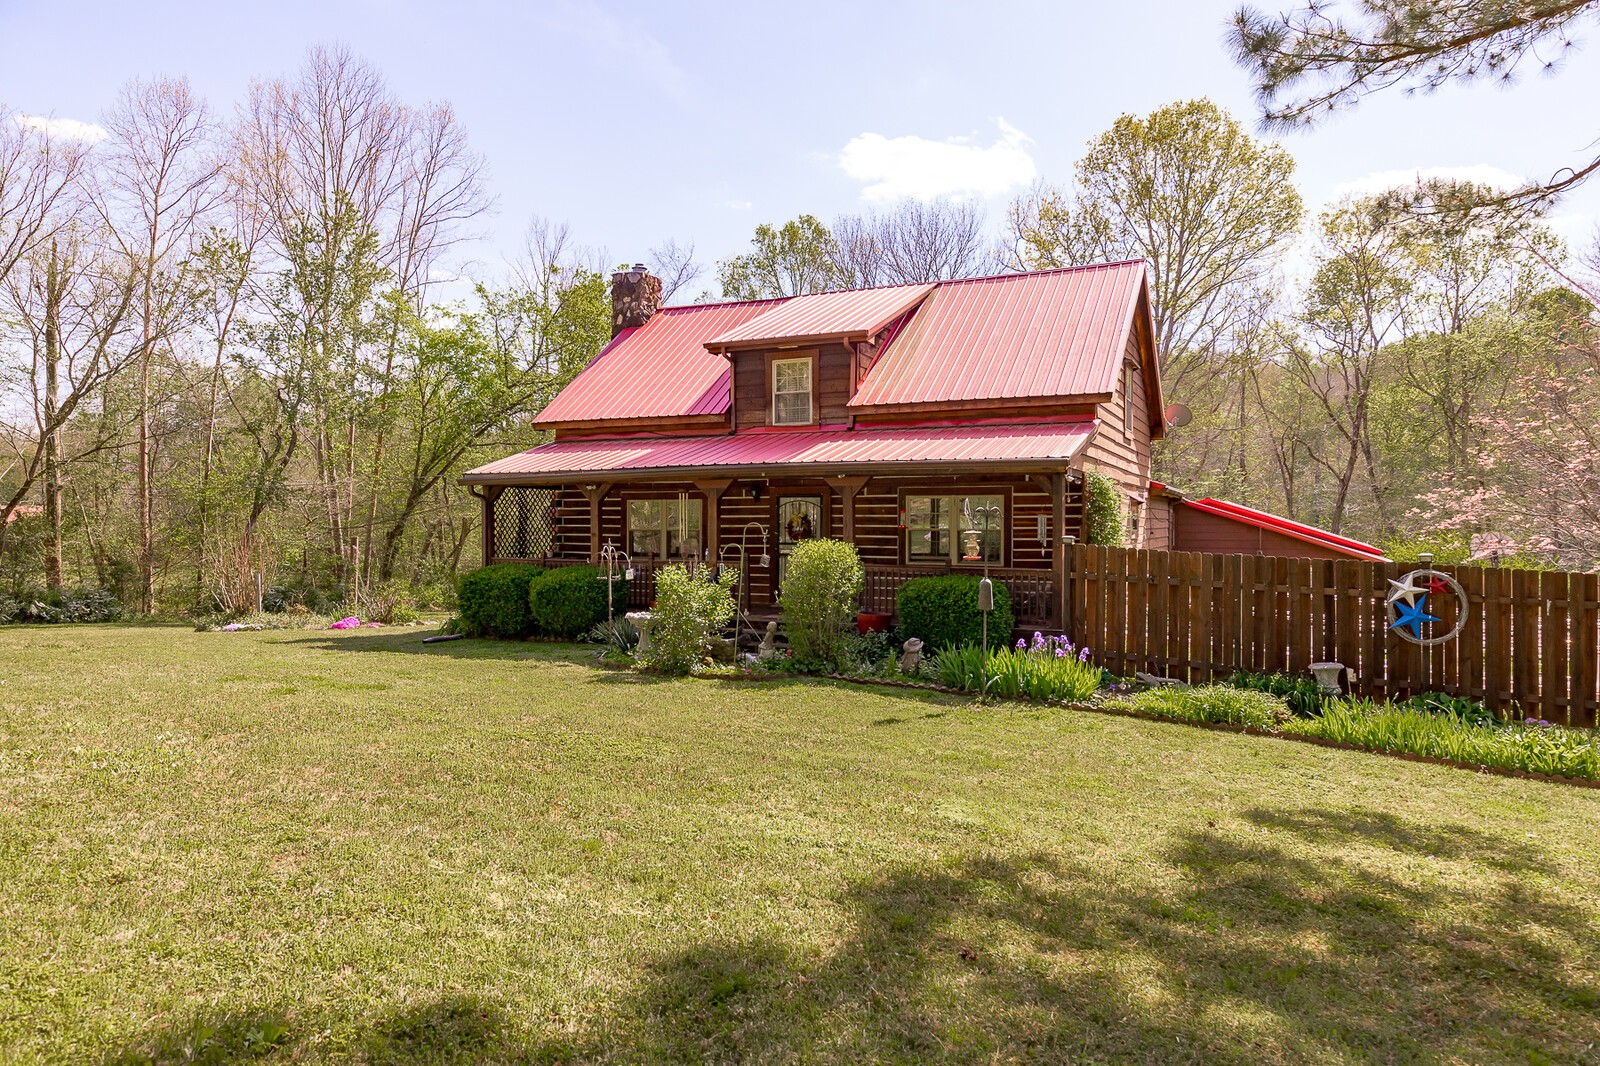 3510 Lewis Atkins Rd Property Photo - Woodlawn, TN real estate listing